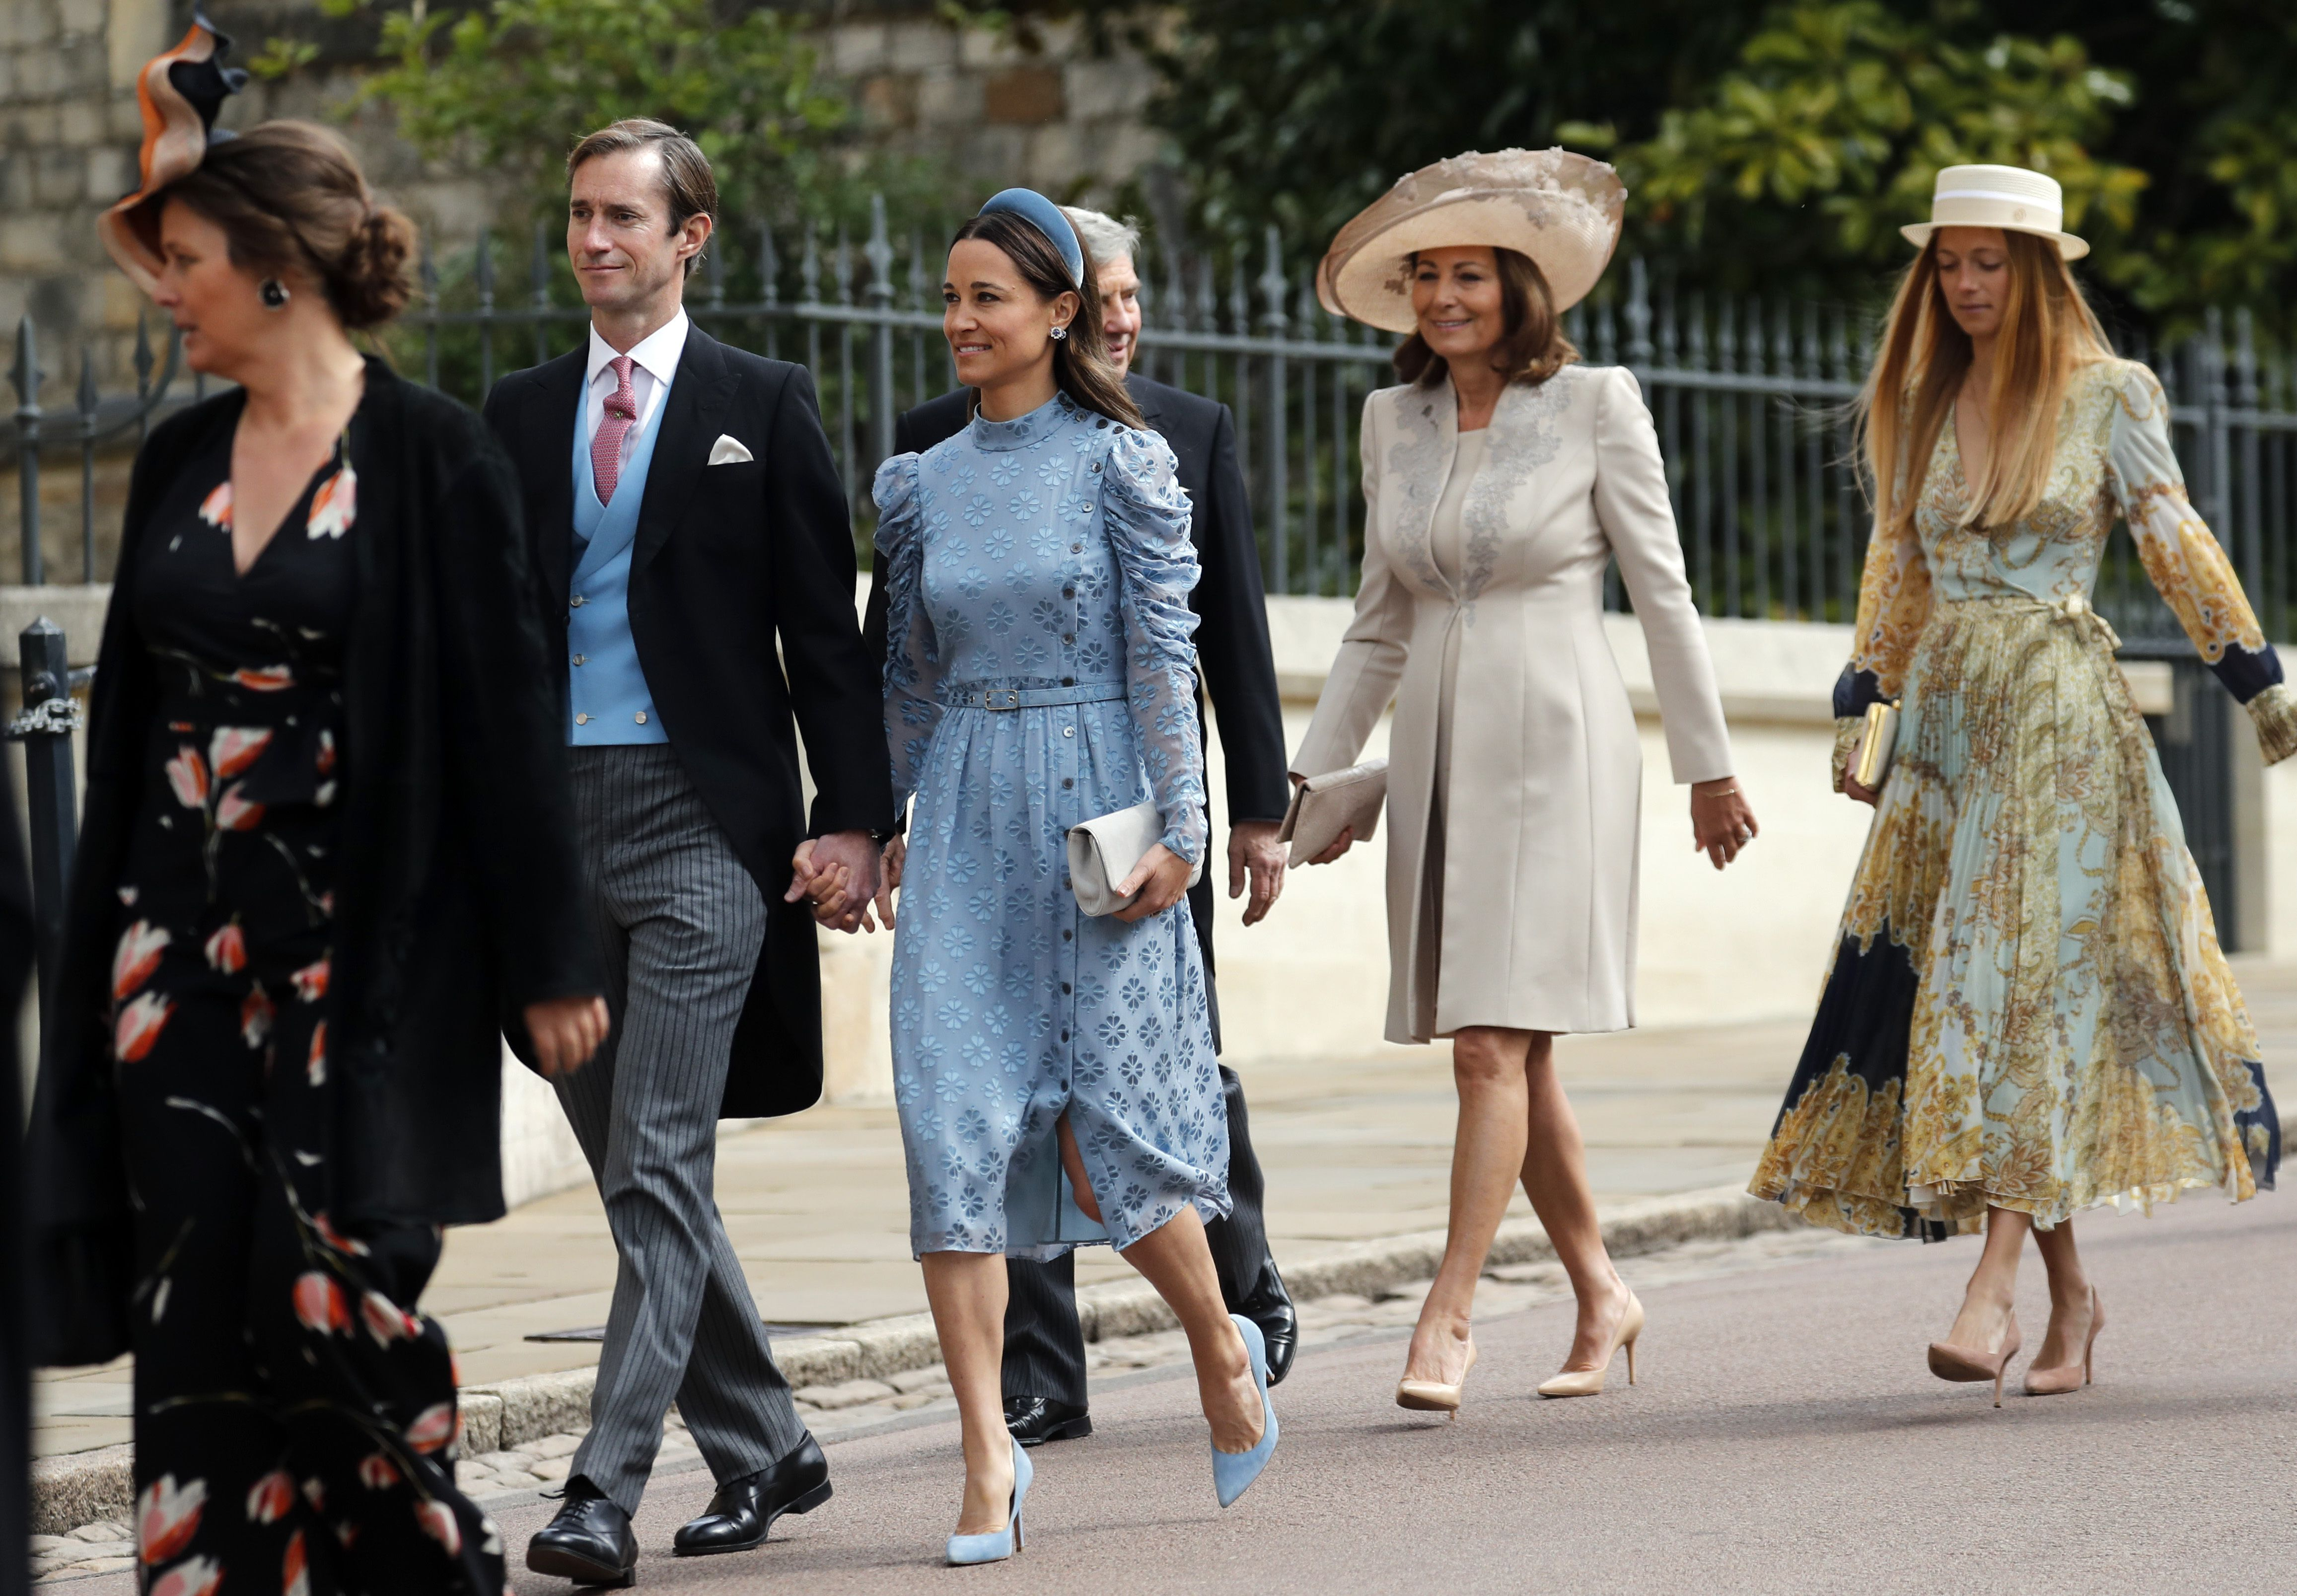 Pippa Middleton Looked Elegant In A Blue Dress At Lady Gabriella